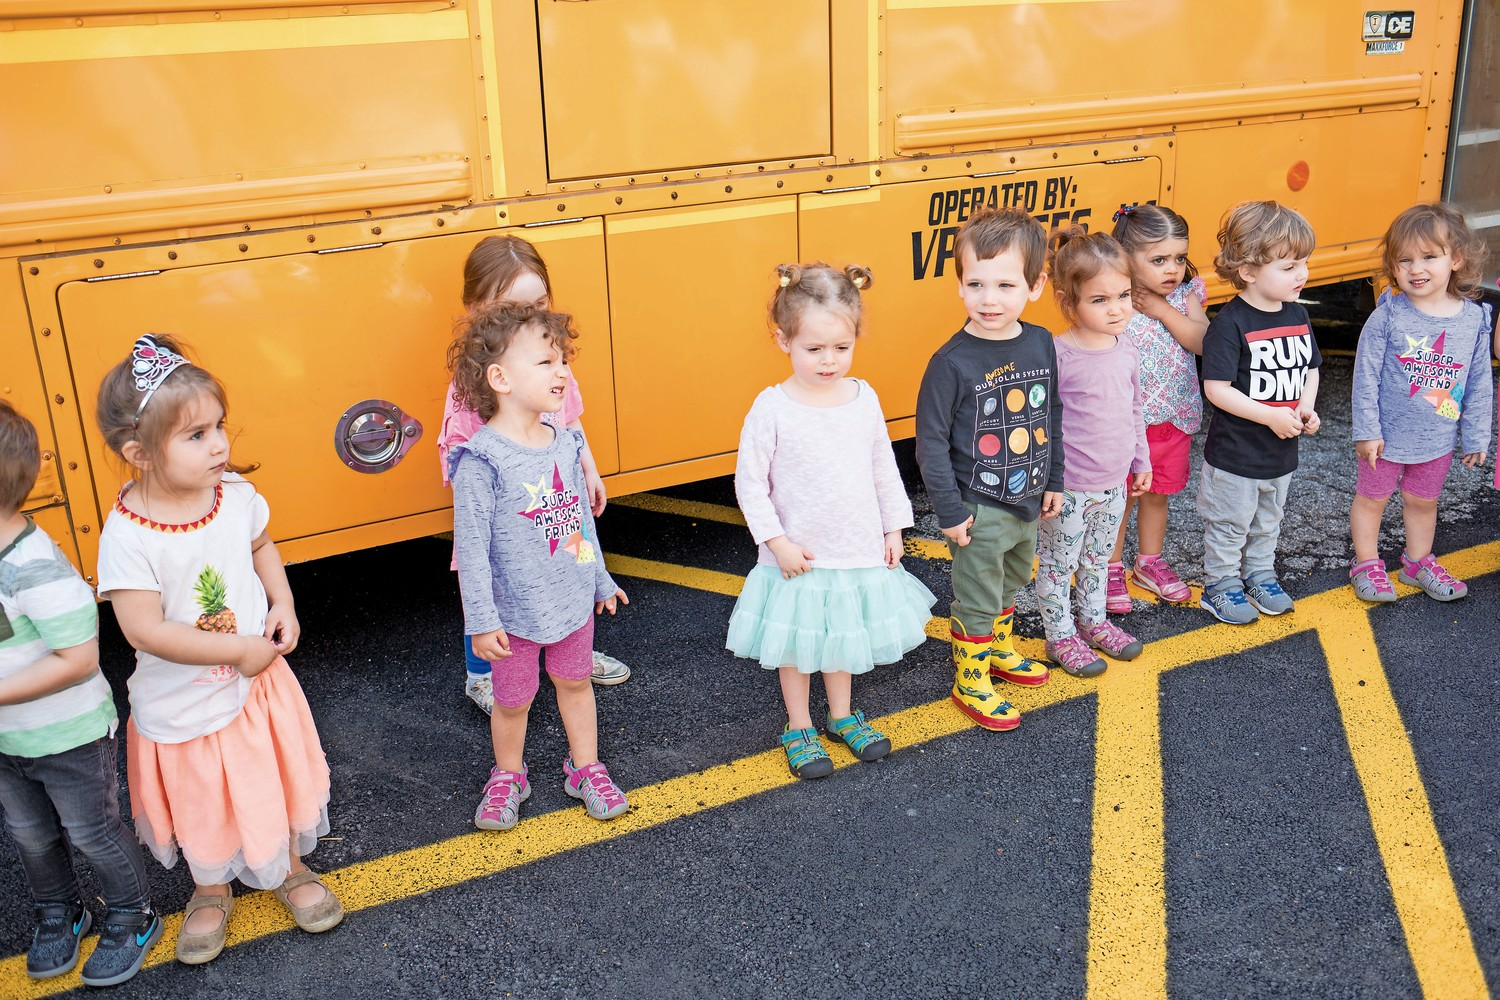 Kids line up outside of a school bus before moving onto the next vehicle during Truck Day at the Riverdale Temple.